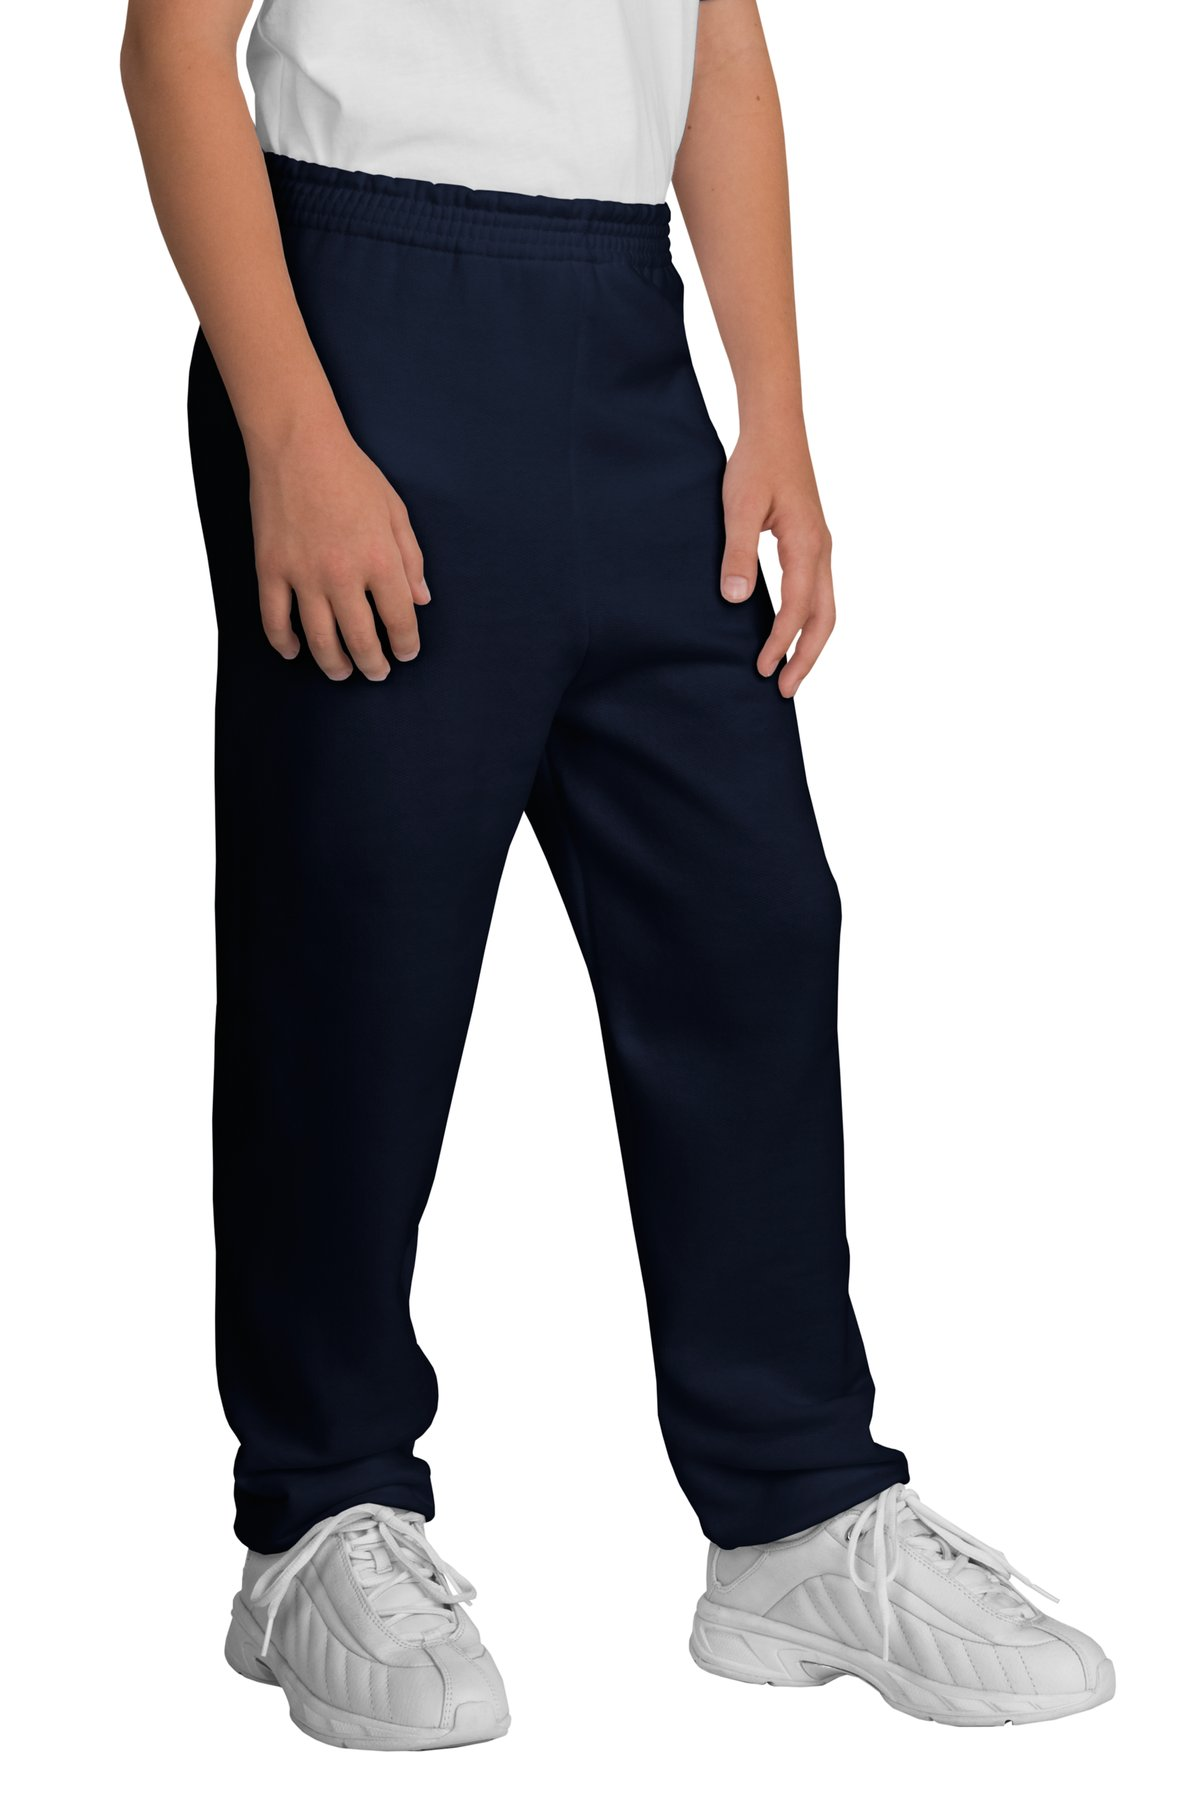 Port & Company ®  - Youth Core Fleece Sweatpant.  PC90YP - Navy